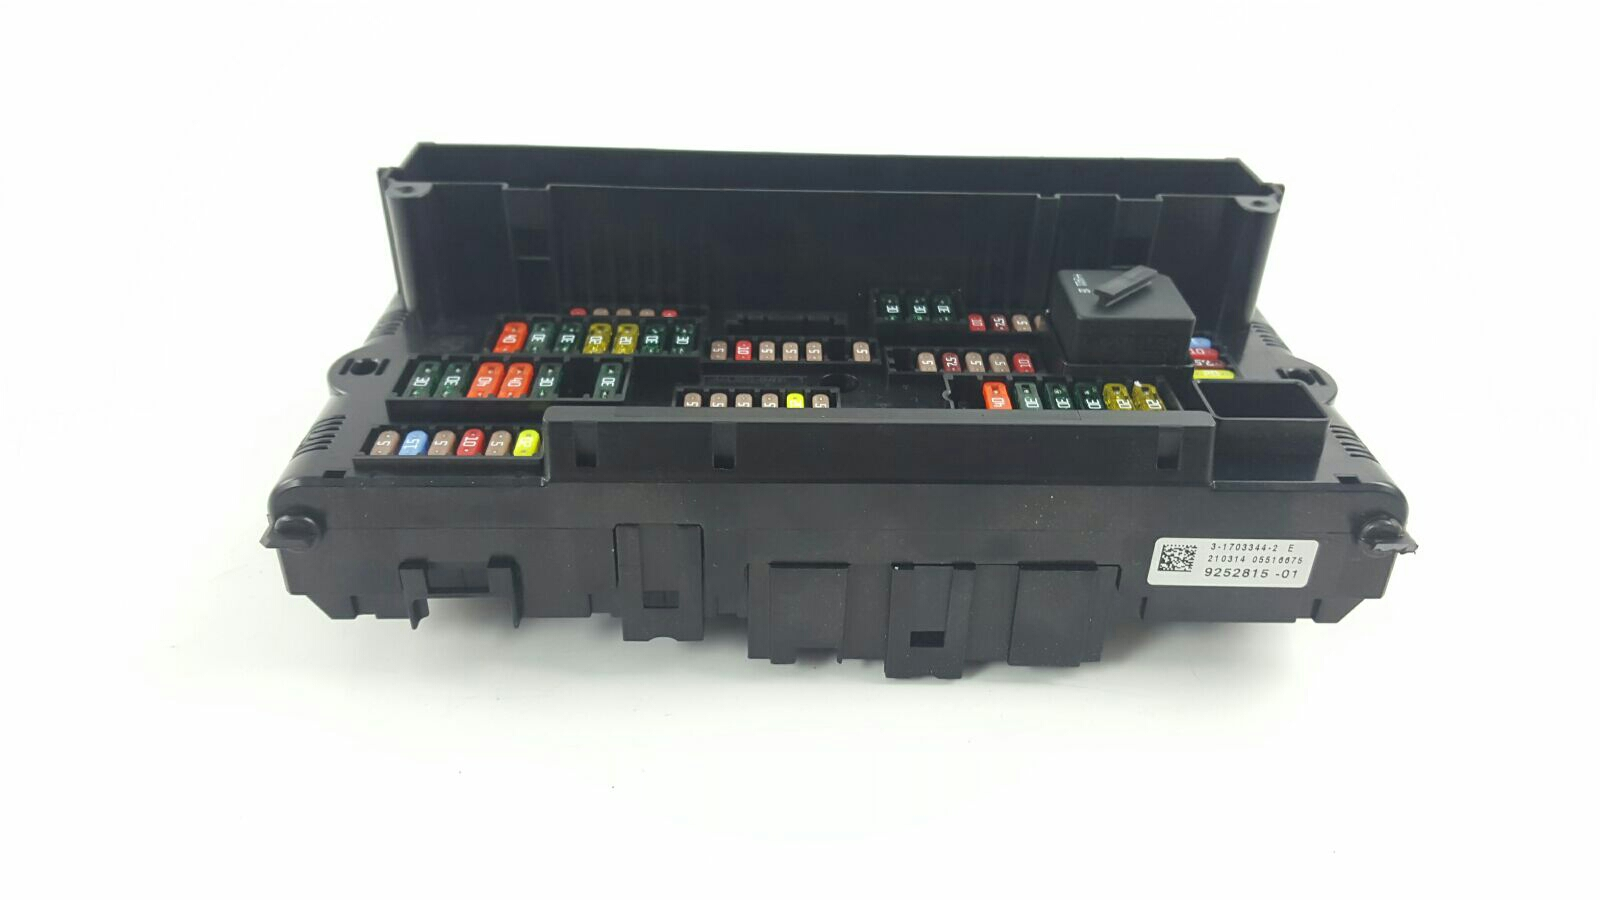 Bmw Fuse Box S 3 Content Resource Of Wiring Diagram Ducati 999 Location 5 Series 2013 To 2016 Diesel Automatic For Sale Rh Scbvehicledismantlers Co Uk 1985